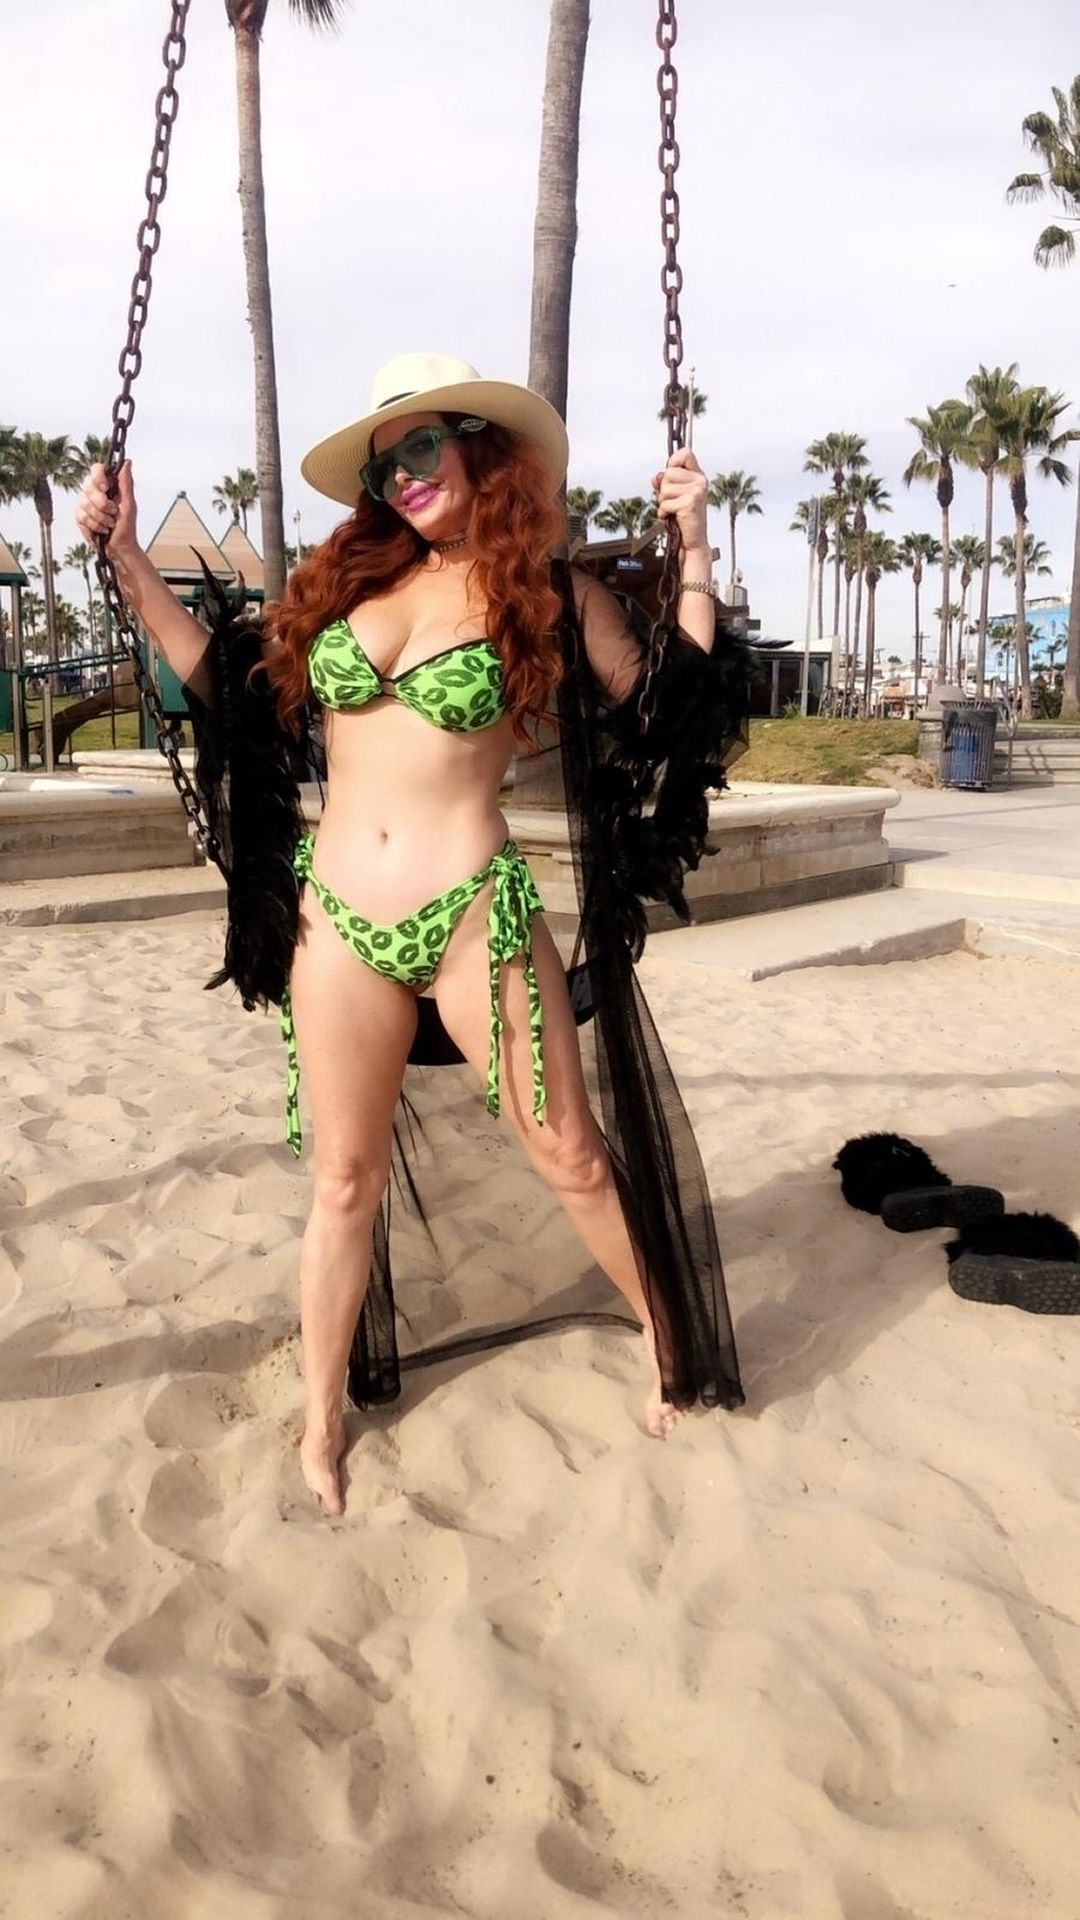 Phoebe Price Shows Off Her Curves In Venice Beach 0024